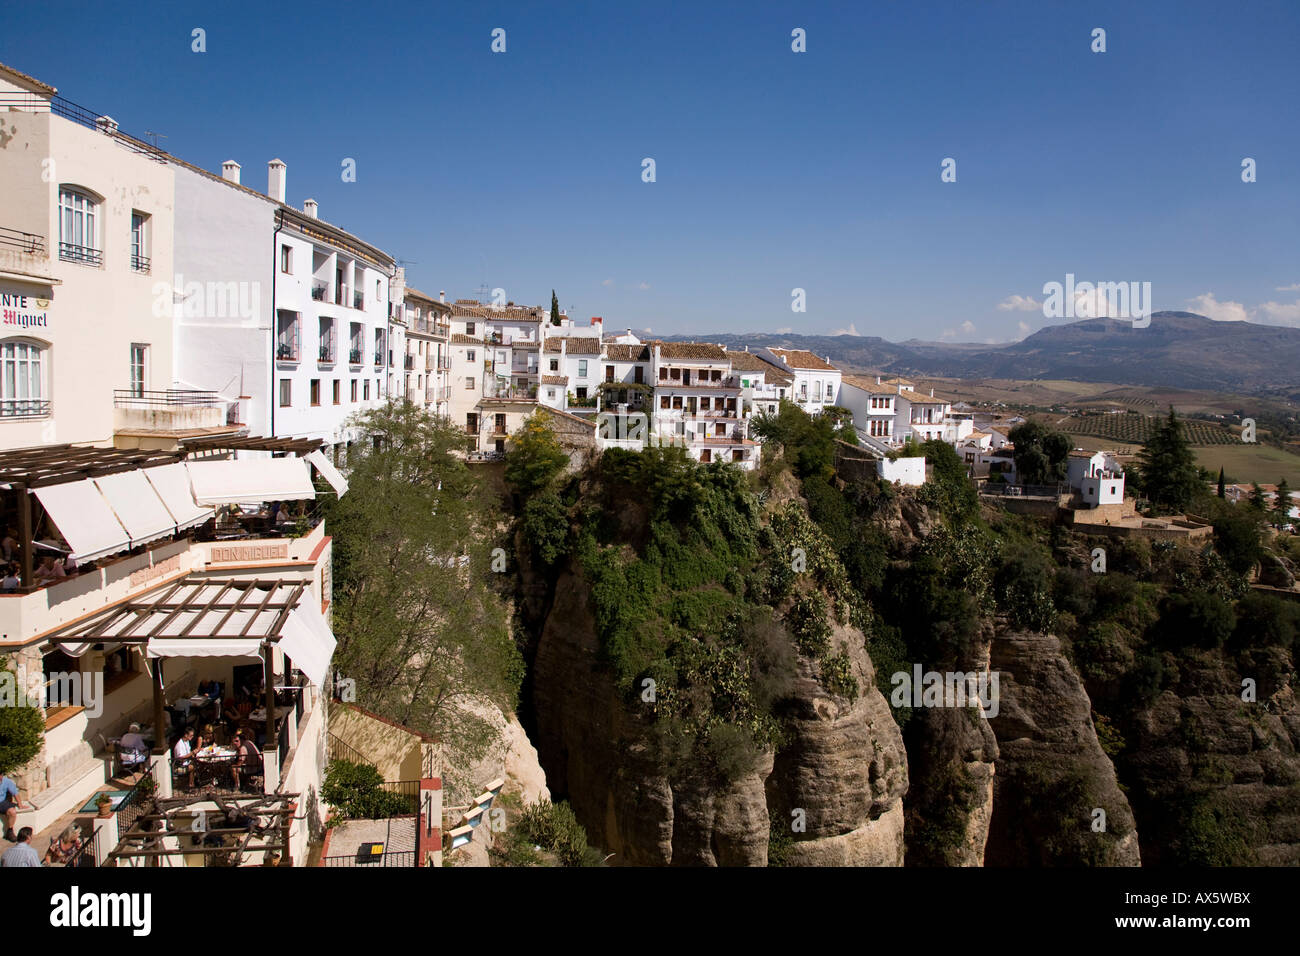 Old part of the town of Ronda atop a plateau in the Serrania de Ronda, Andalusia, Spain, Europe - Stock Image